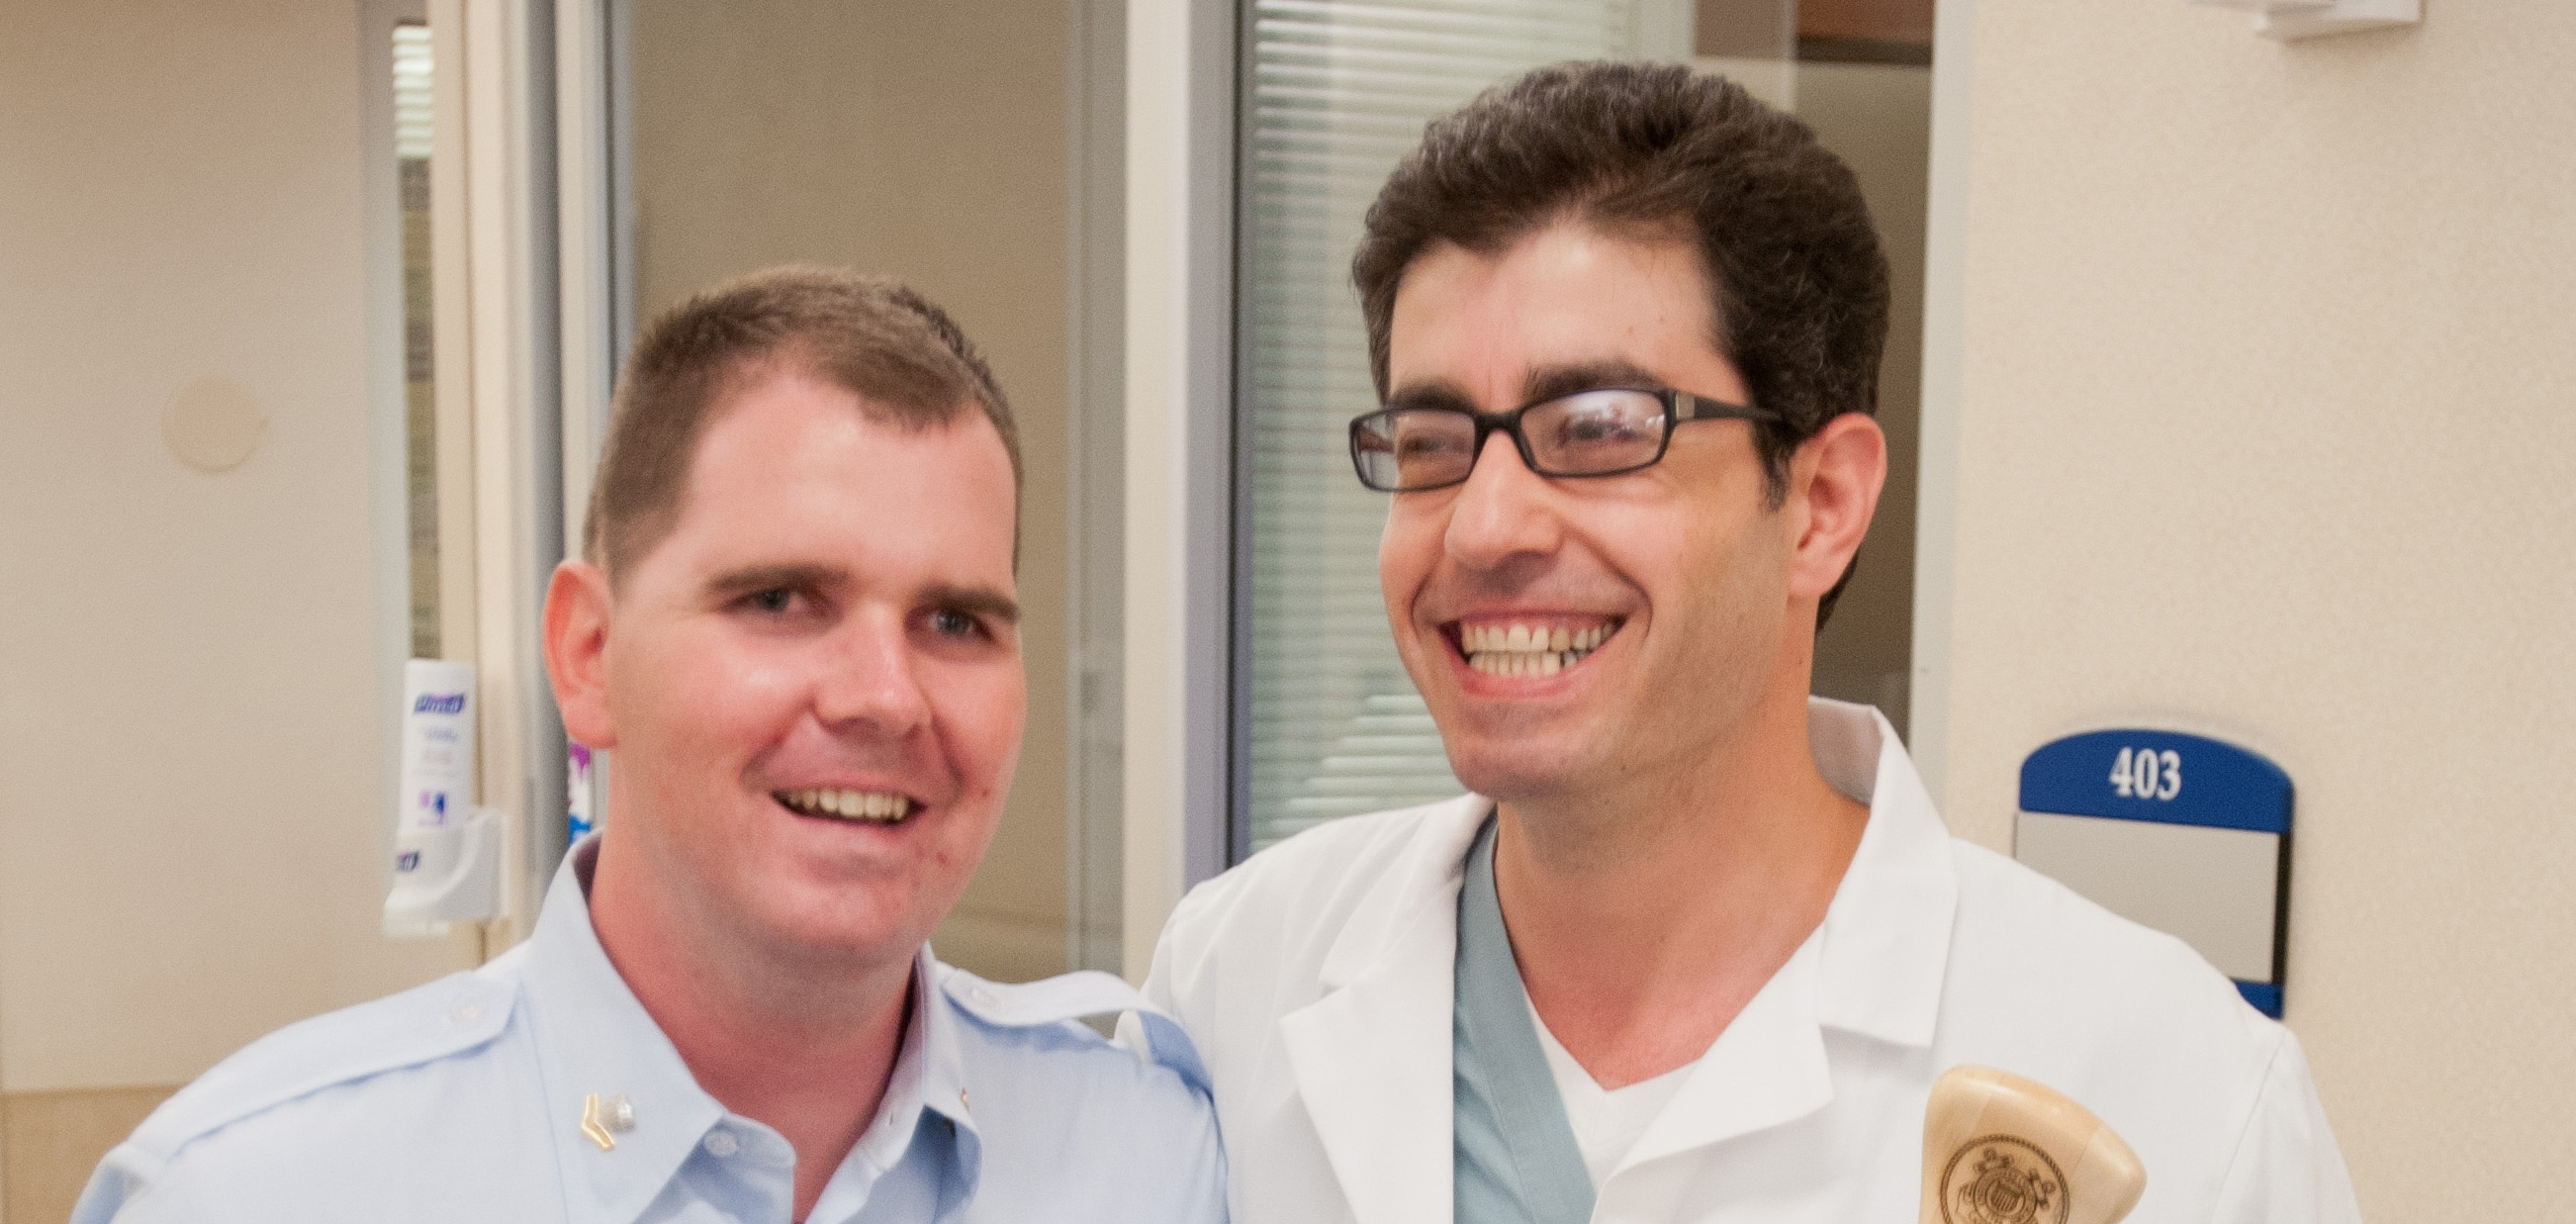 Sean Bretz and Dr. Rahib Tawk